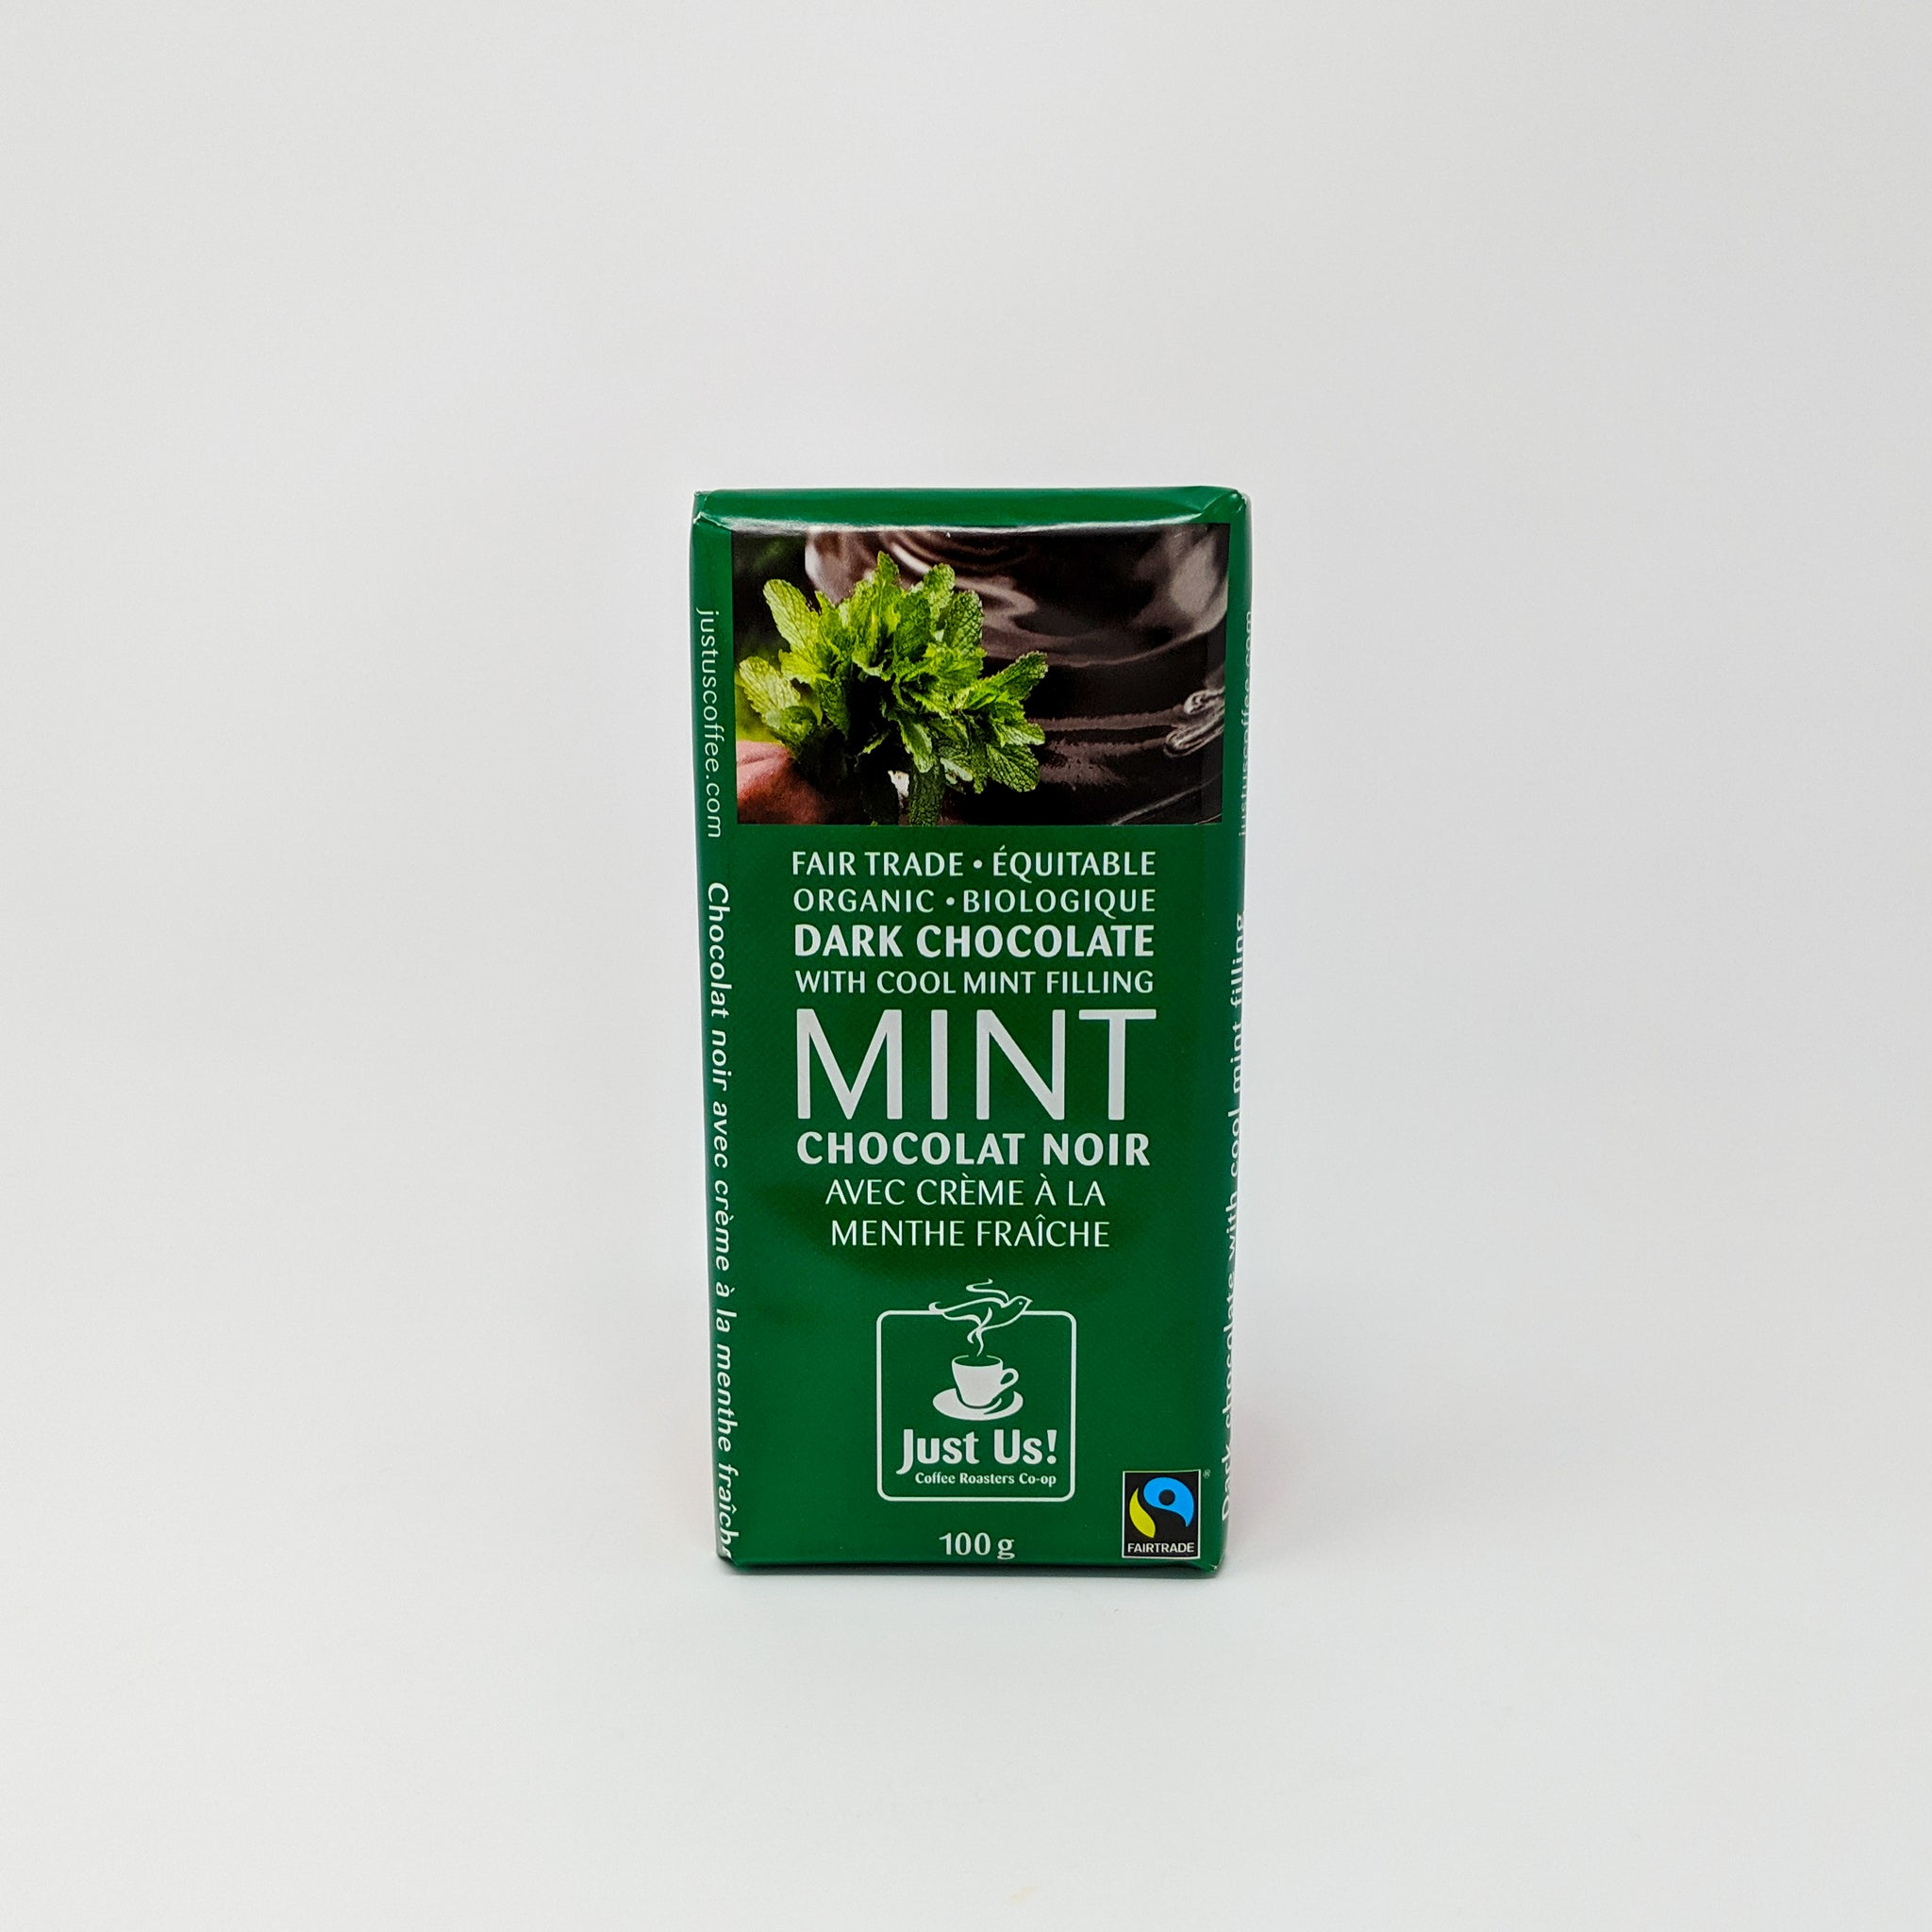 Mint Dark Chocolate Bar - Fair Trade & Organic - Just Us!